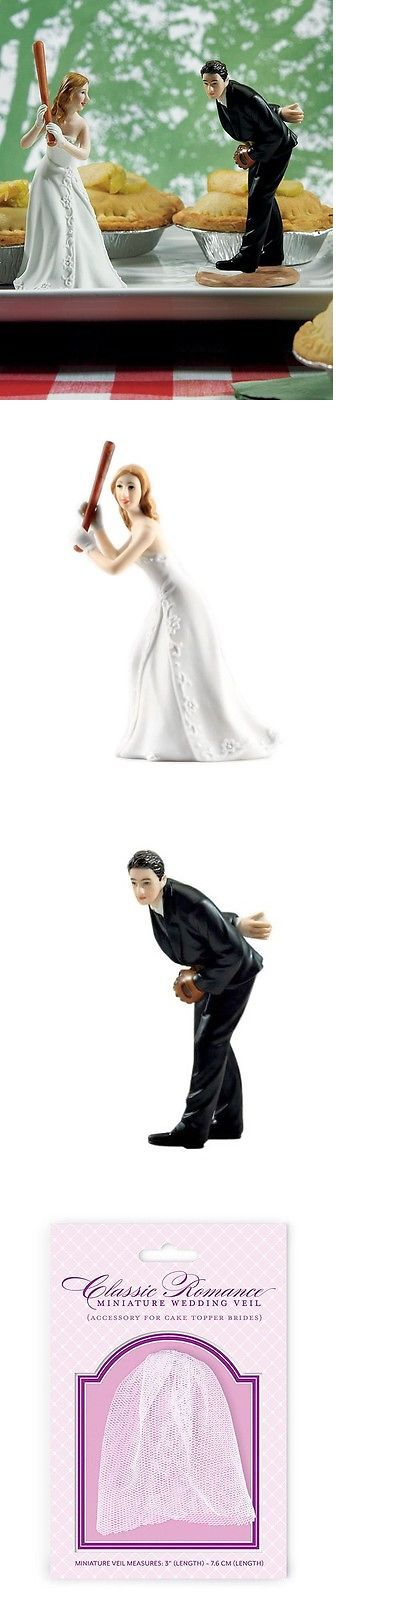 Wedding Cakes Toppers: Baseball Couple Wedding Cake Topper Funny Pitching Groom Cute Home Run Bride -> BUY IT NOW ONLY: $51.99 on eBay!